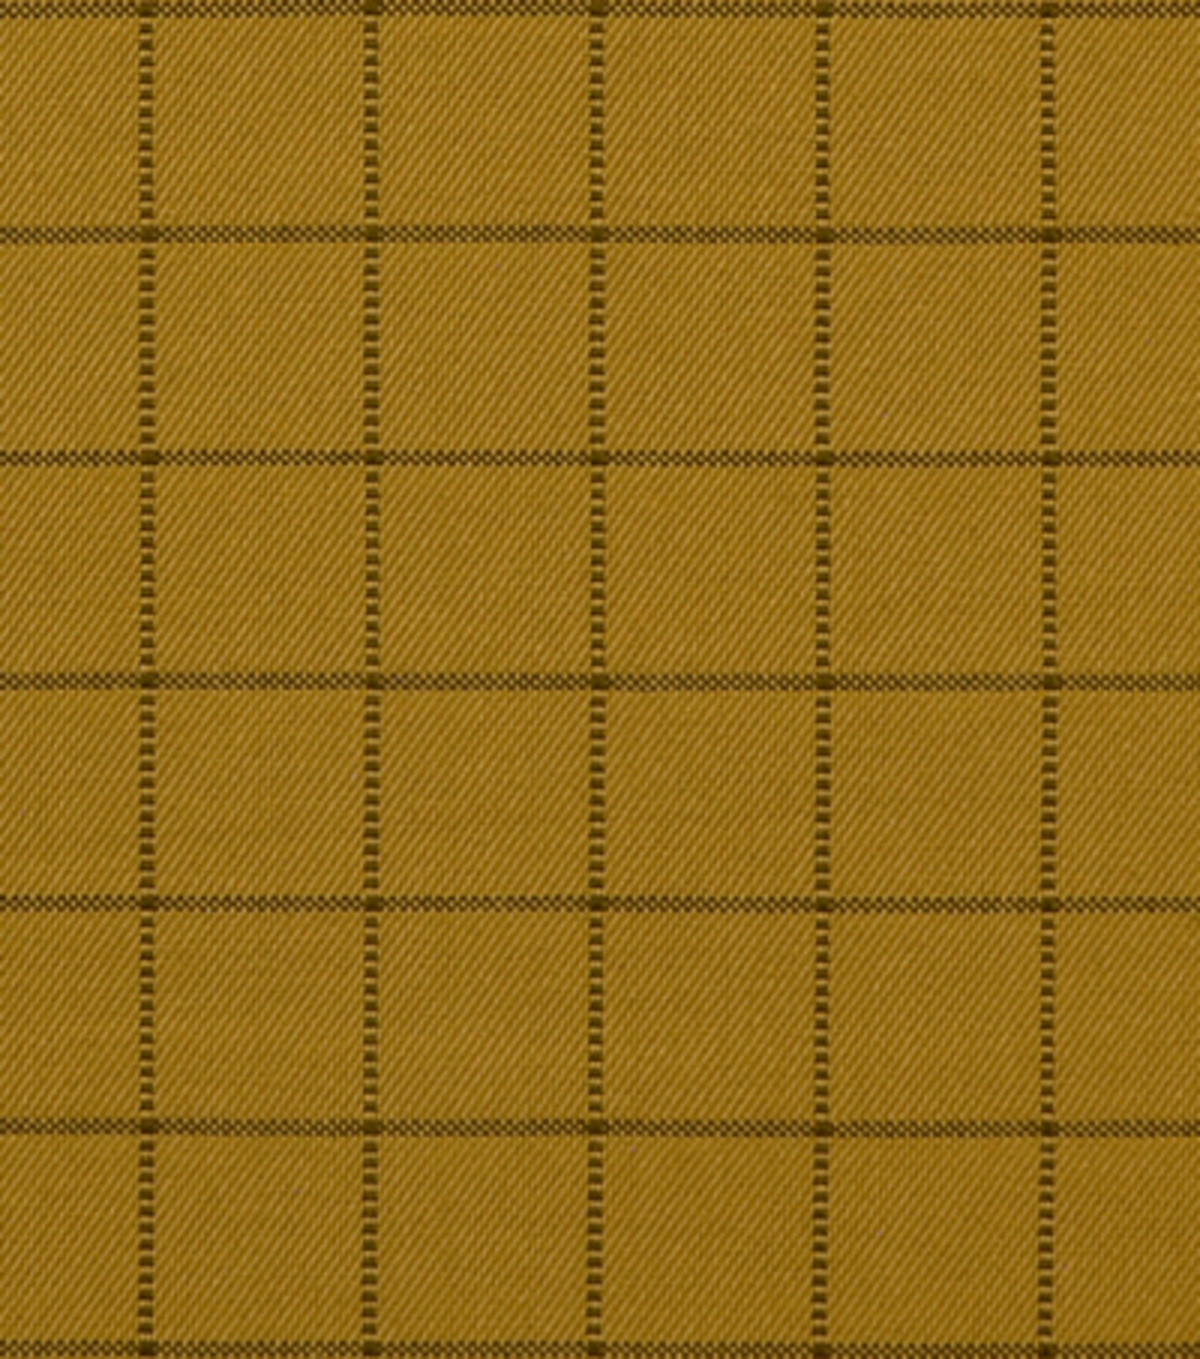 Home Decor 8\u0022x8\u0022 Fabric Swatch-Covington Ansible 862 Oro